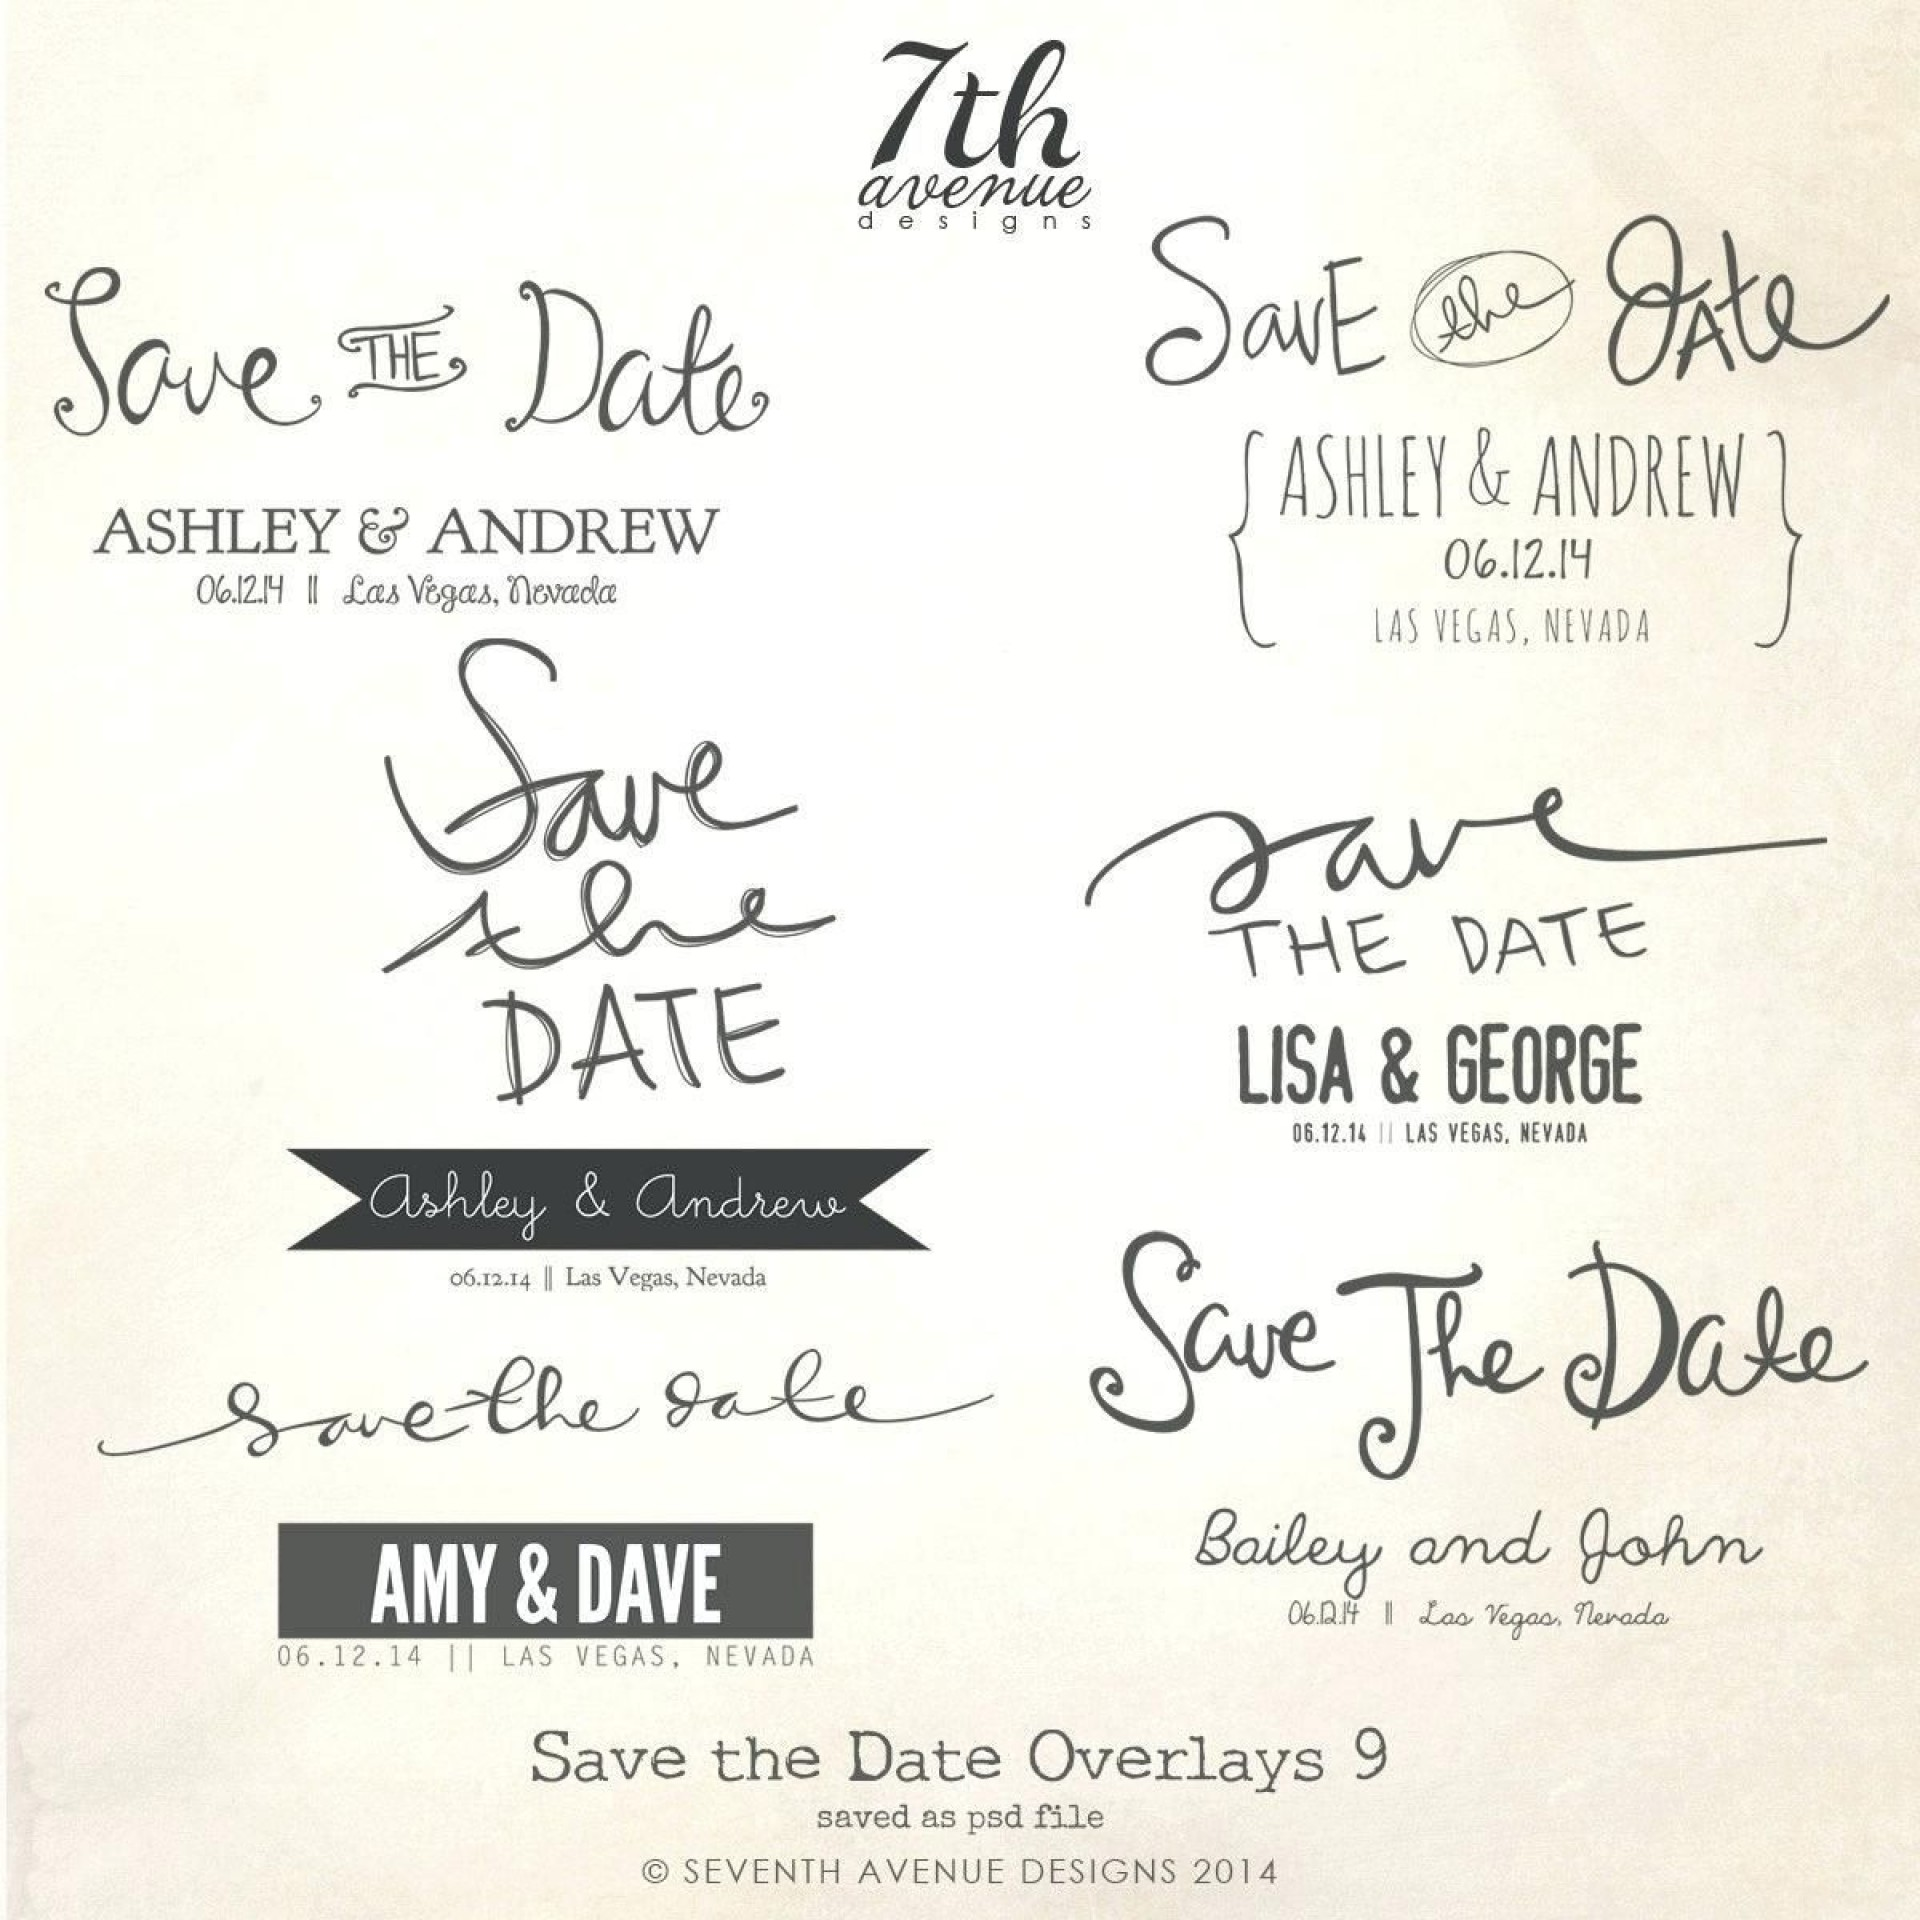 006 Fantastic Save The Date Template Word Image  Free Customizable For Holiday Party1920